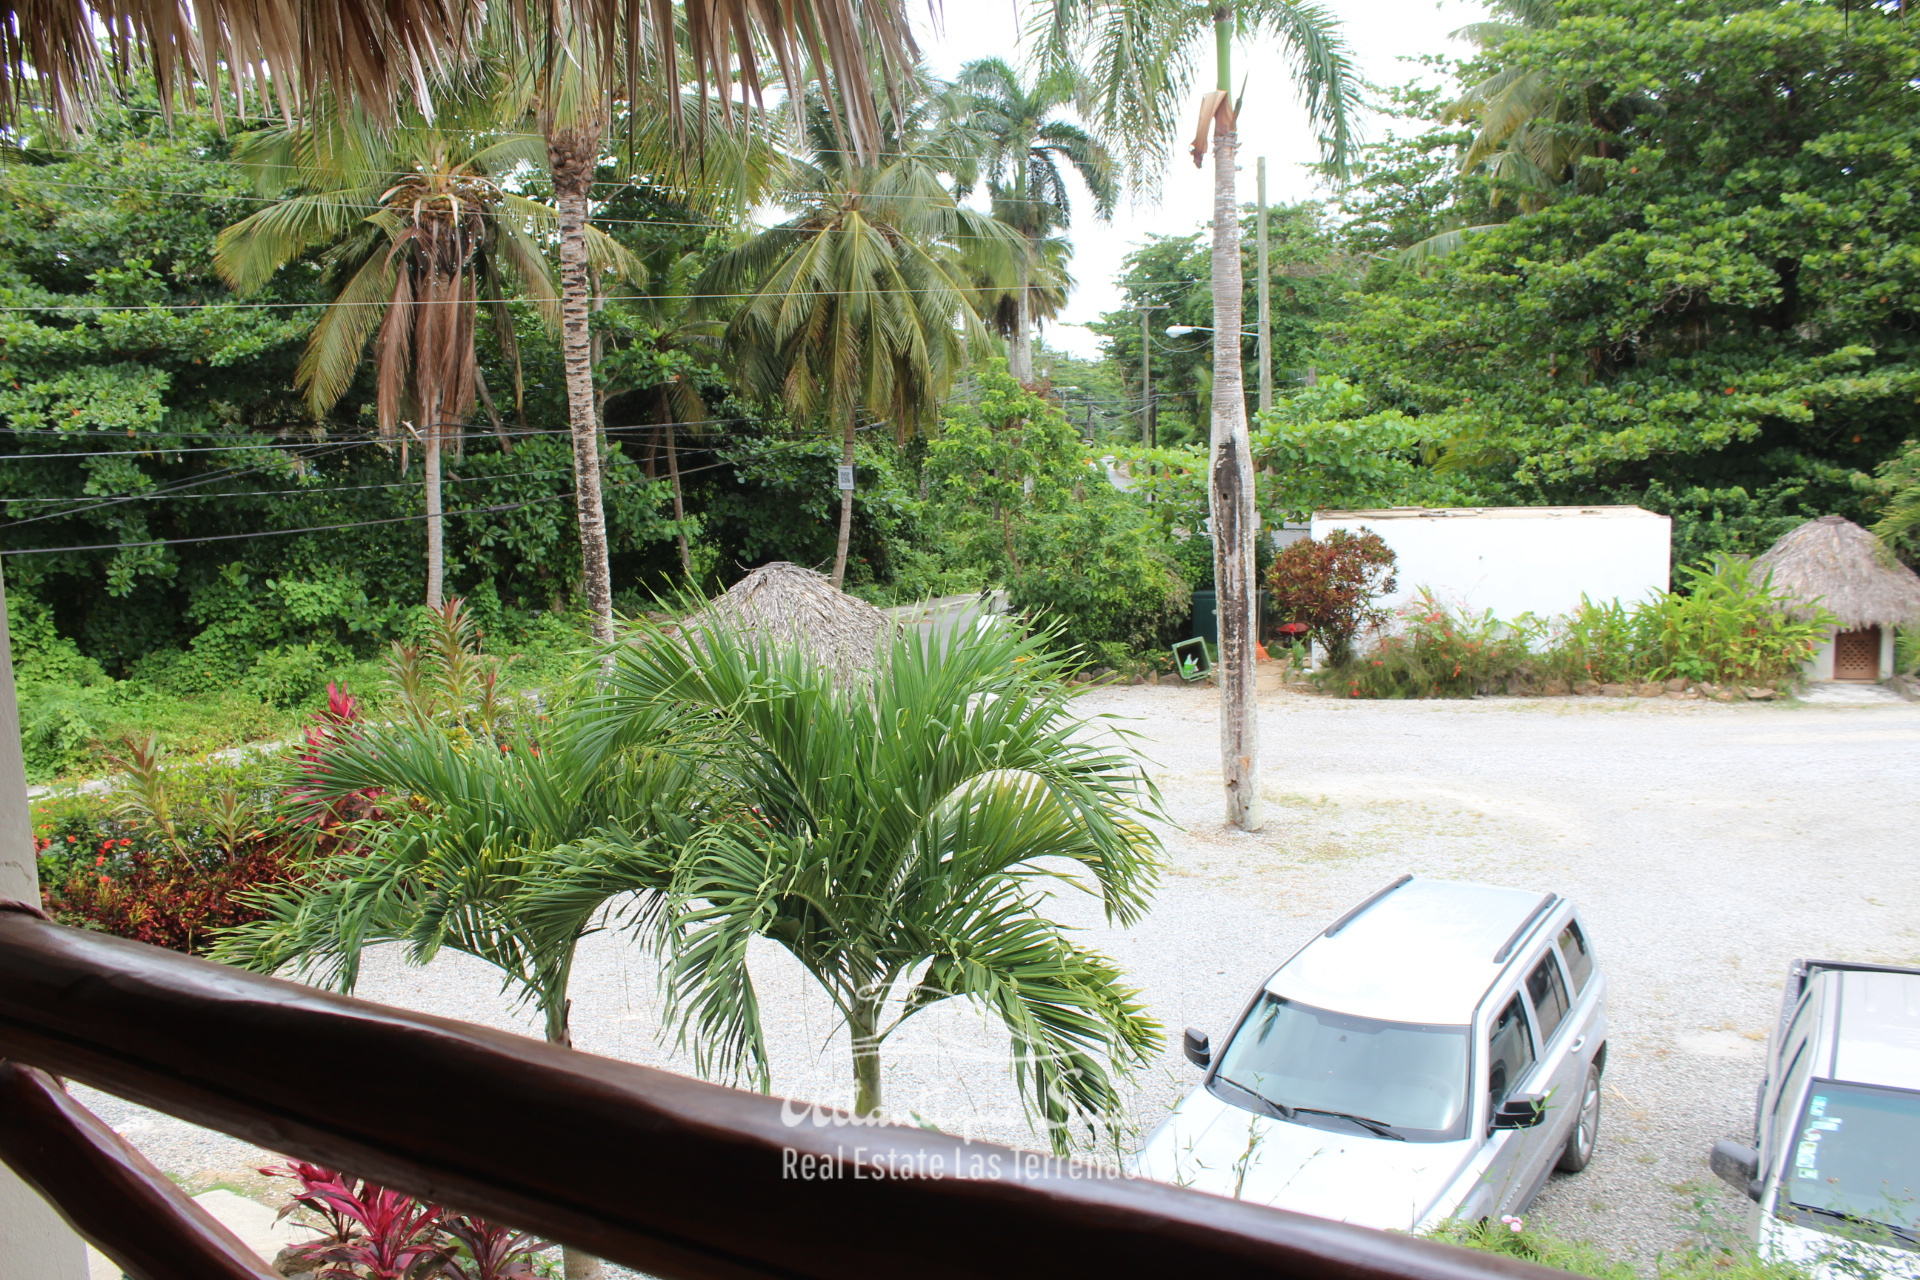 For-sale-Apartment-in-beachfront-community-with-mezzanine-Las-Terrenas_4829 (1).JPG